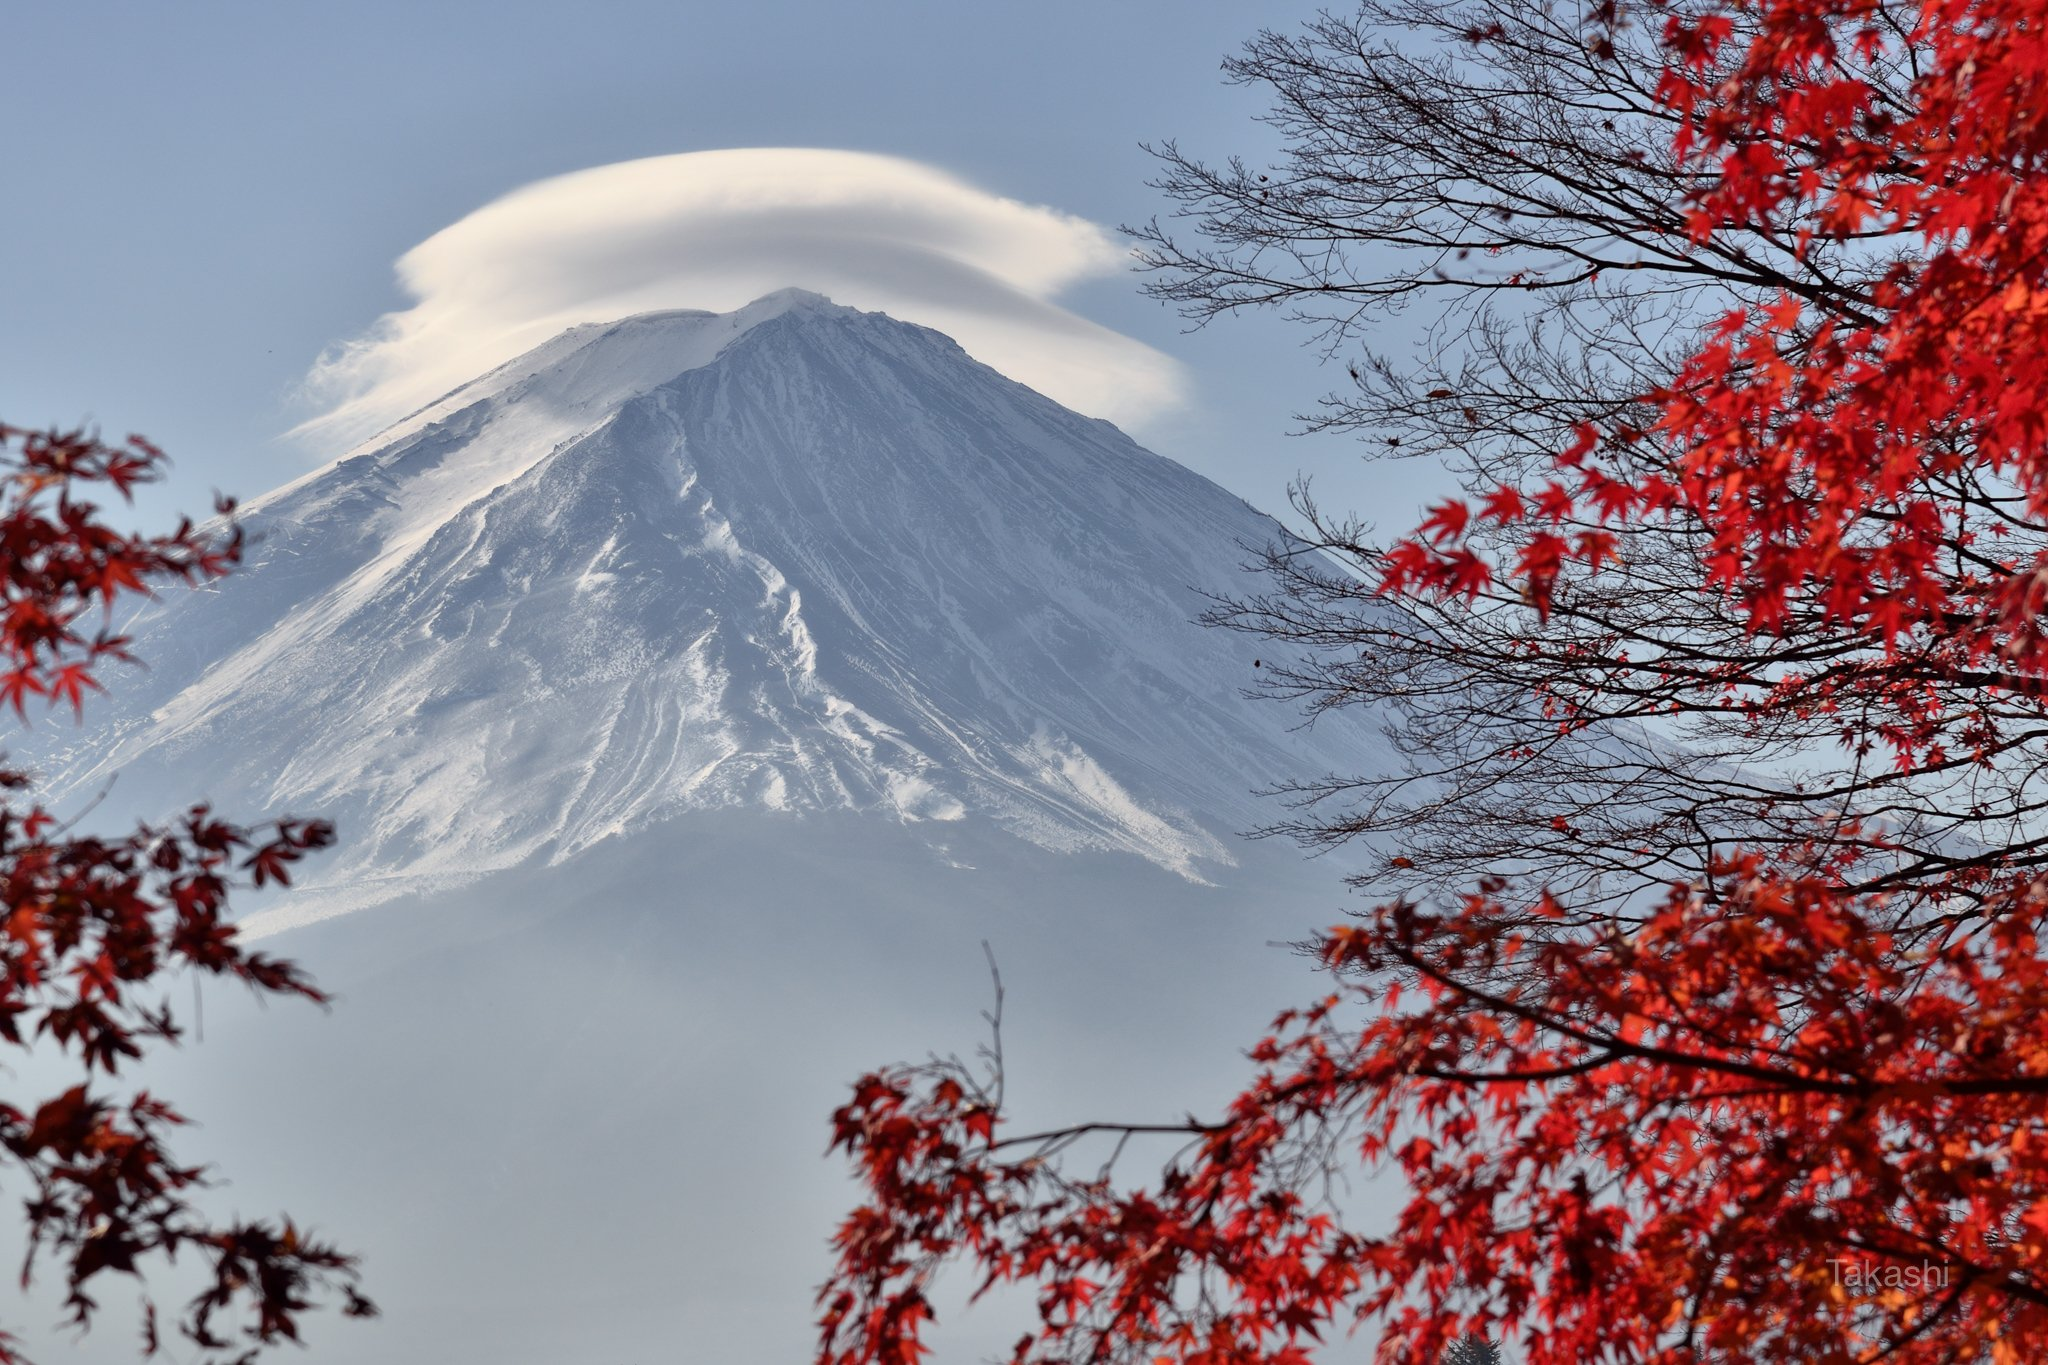 Fuji,Japan,mountain,clouds,lenticular clouds,maple,red,, Takashi